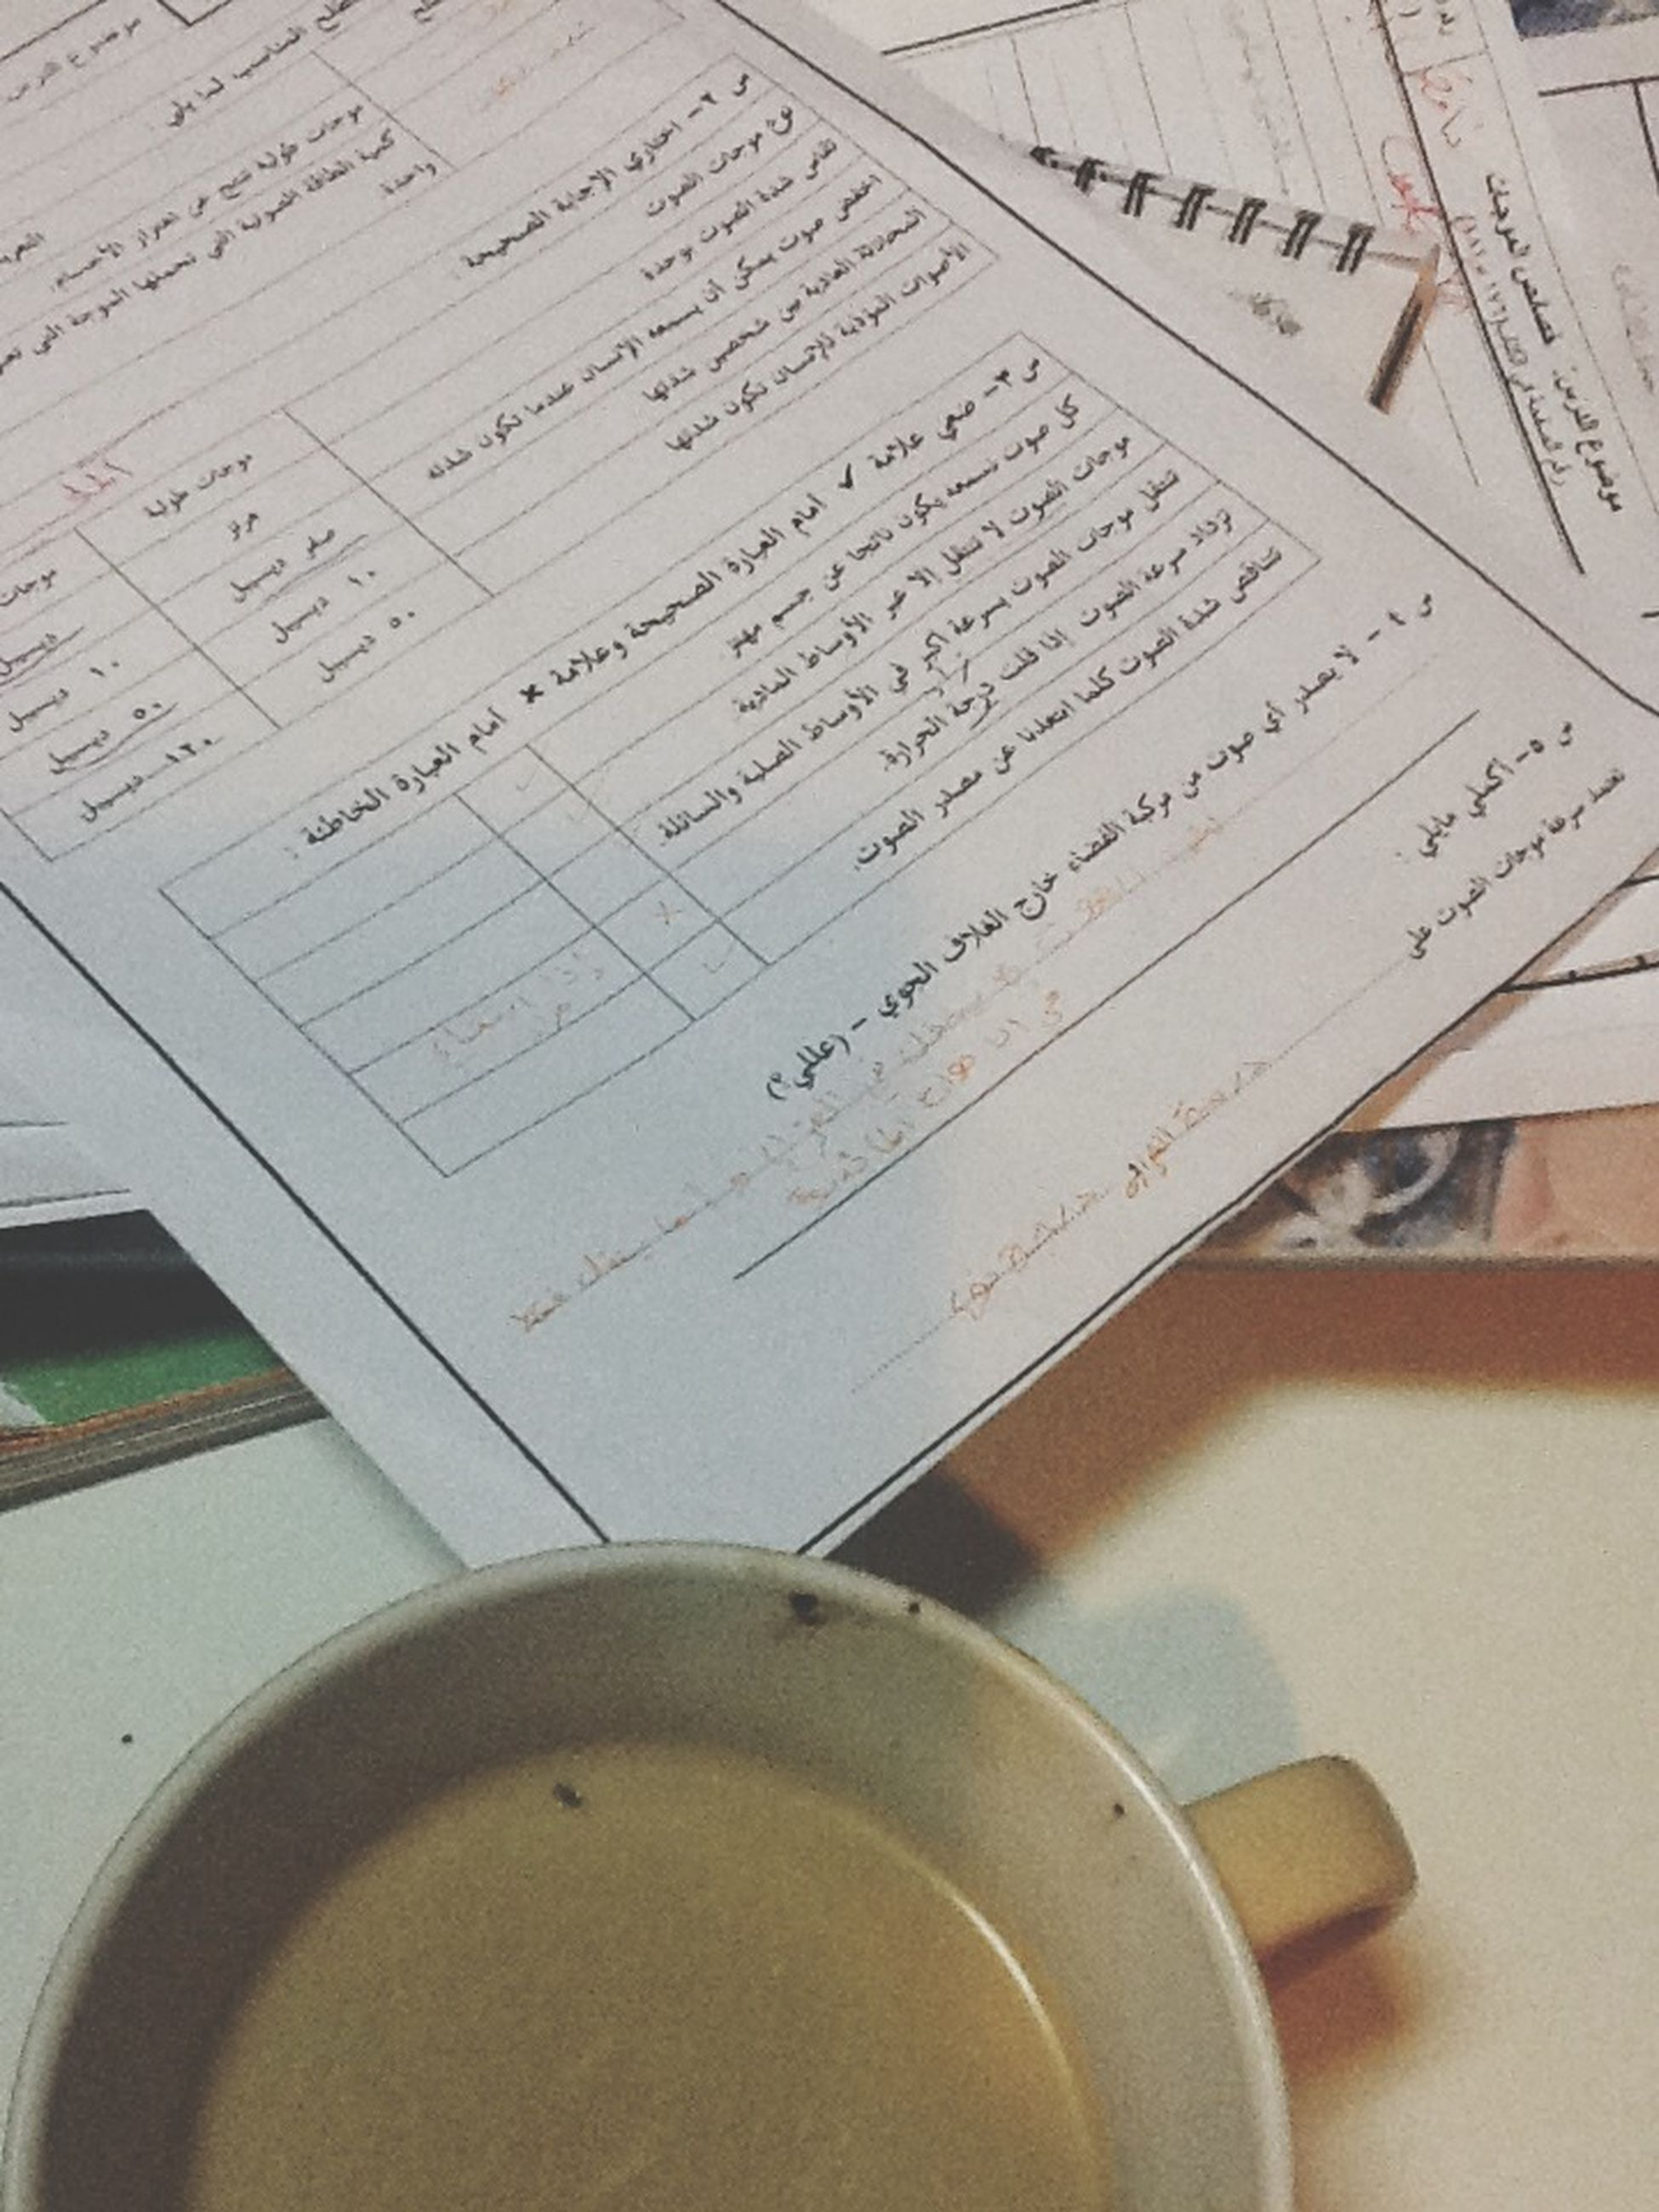 indoors, communication, text, book, table, close-up, still life, western script, paper, education, high angle view, pen, no people, technology, open, number, page, selective focus, coffee cup, part of